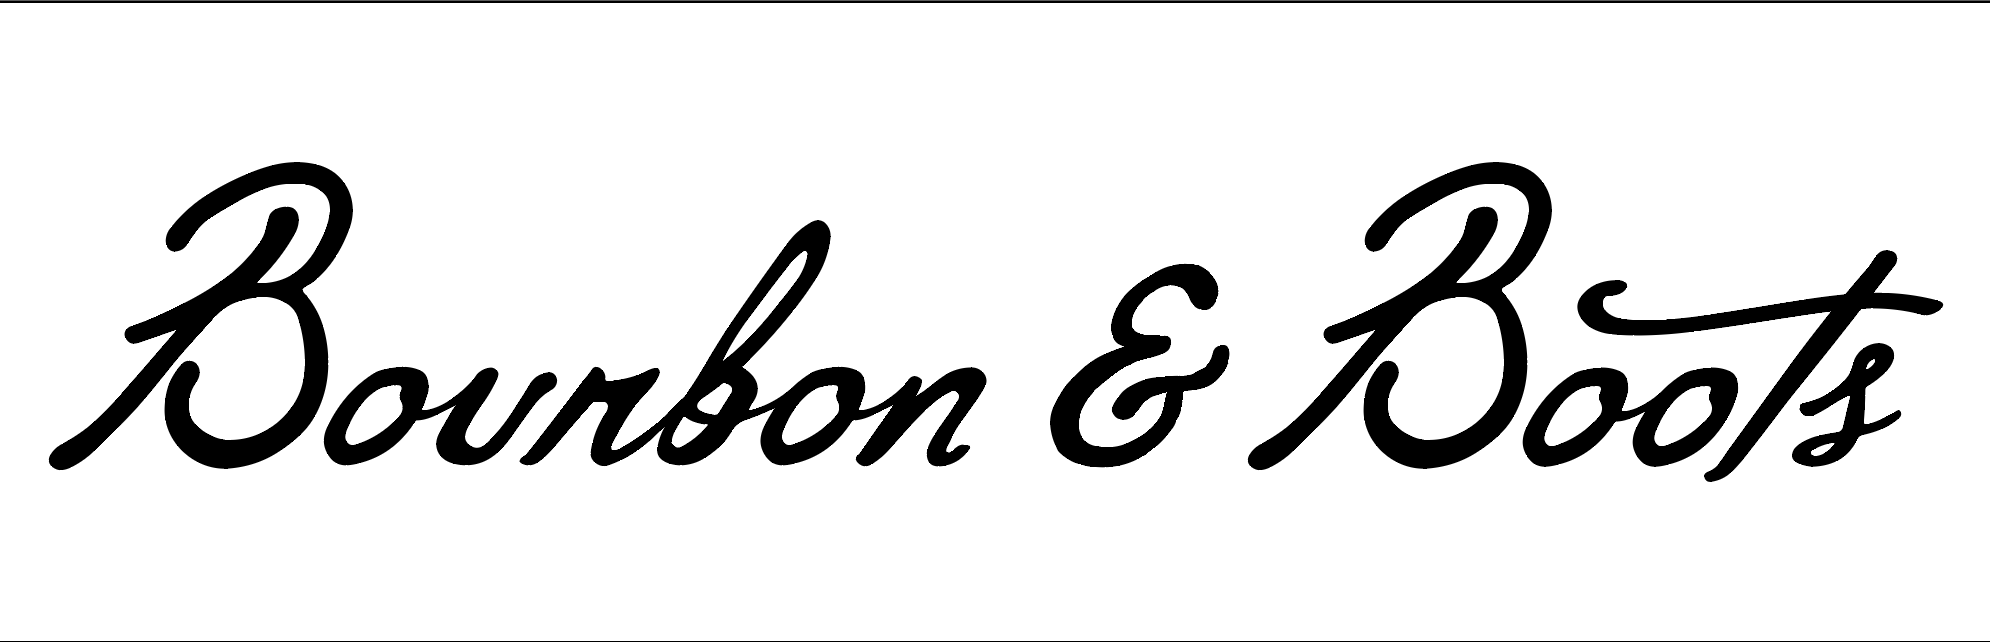 Bourbon & Boots coupon codes